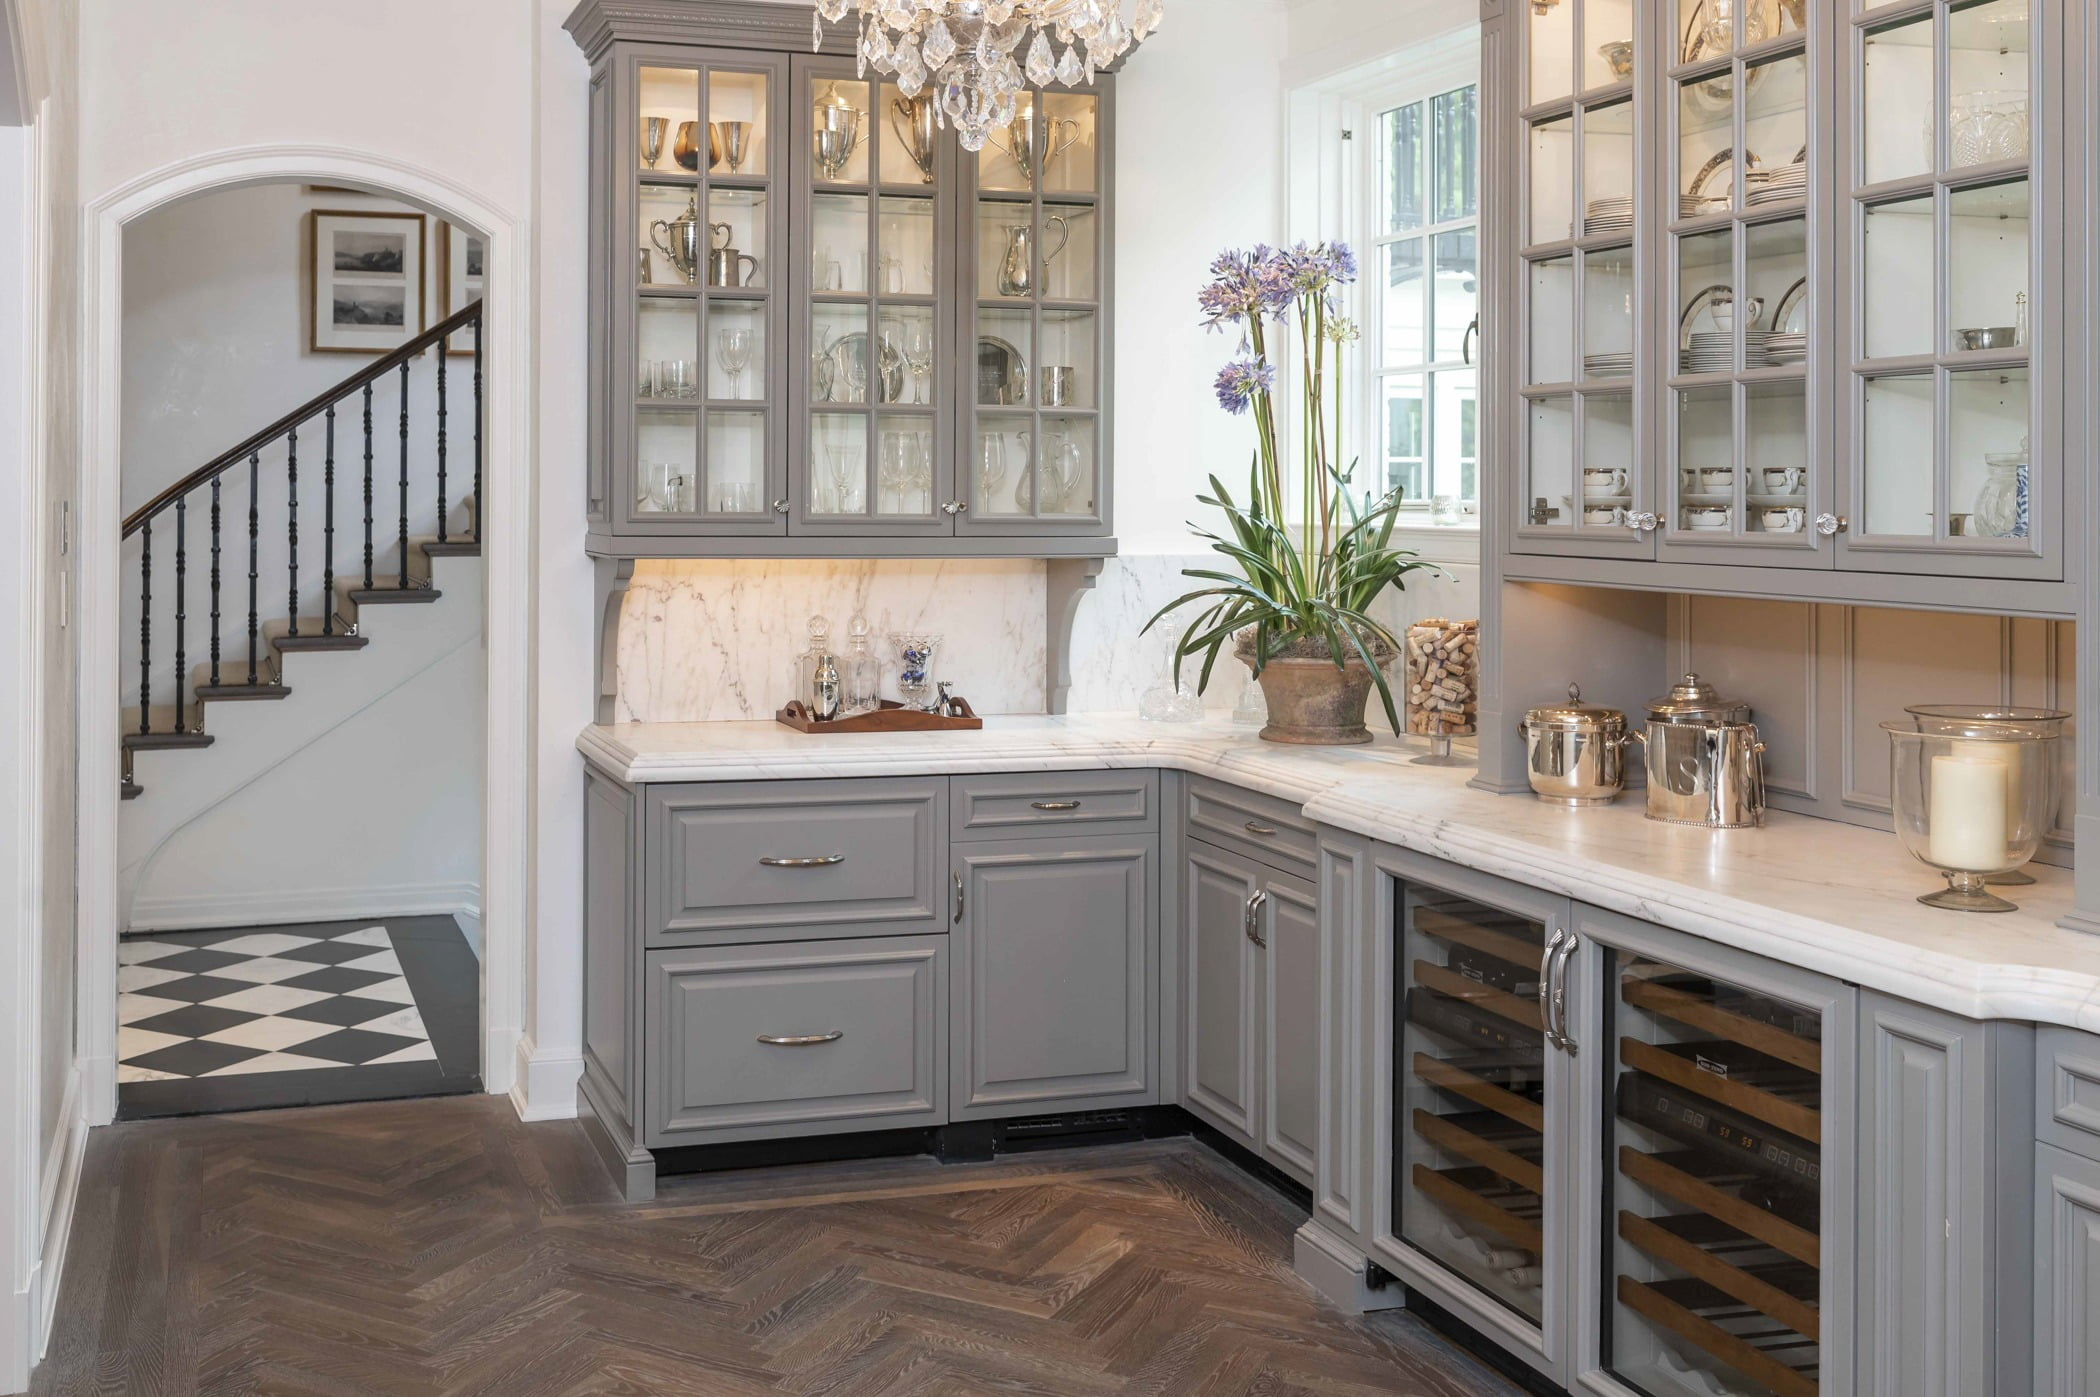 Traditional kitchen area with custom light grey cabinetry, marble countertops, ornate crystal chandelier, and dark chevron hardwood flooring (Doorway view)